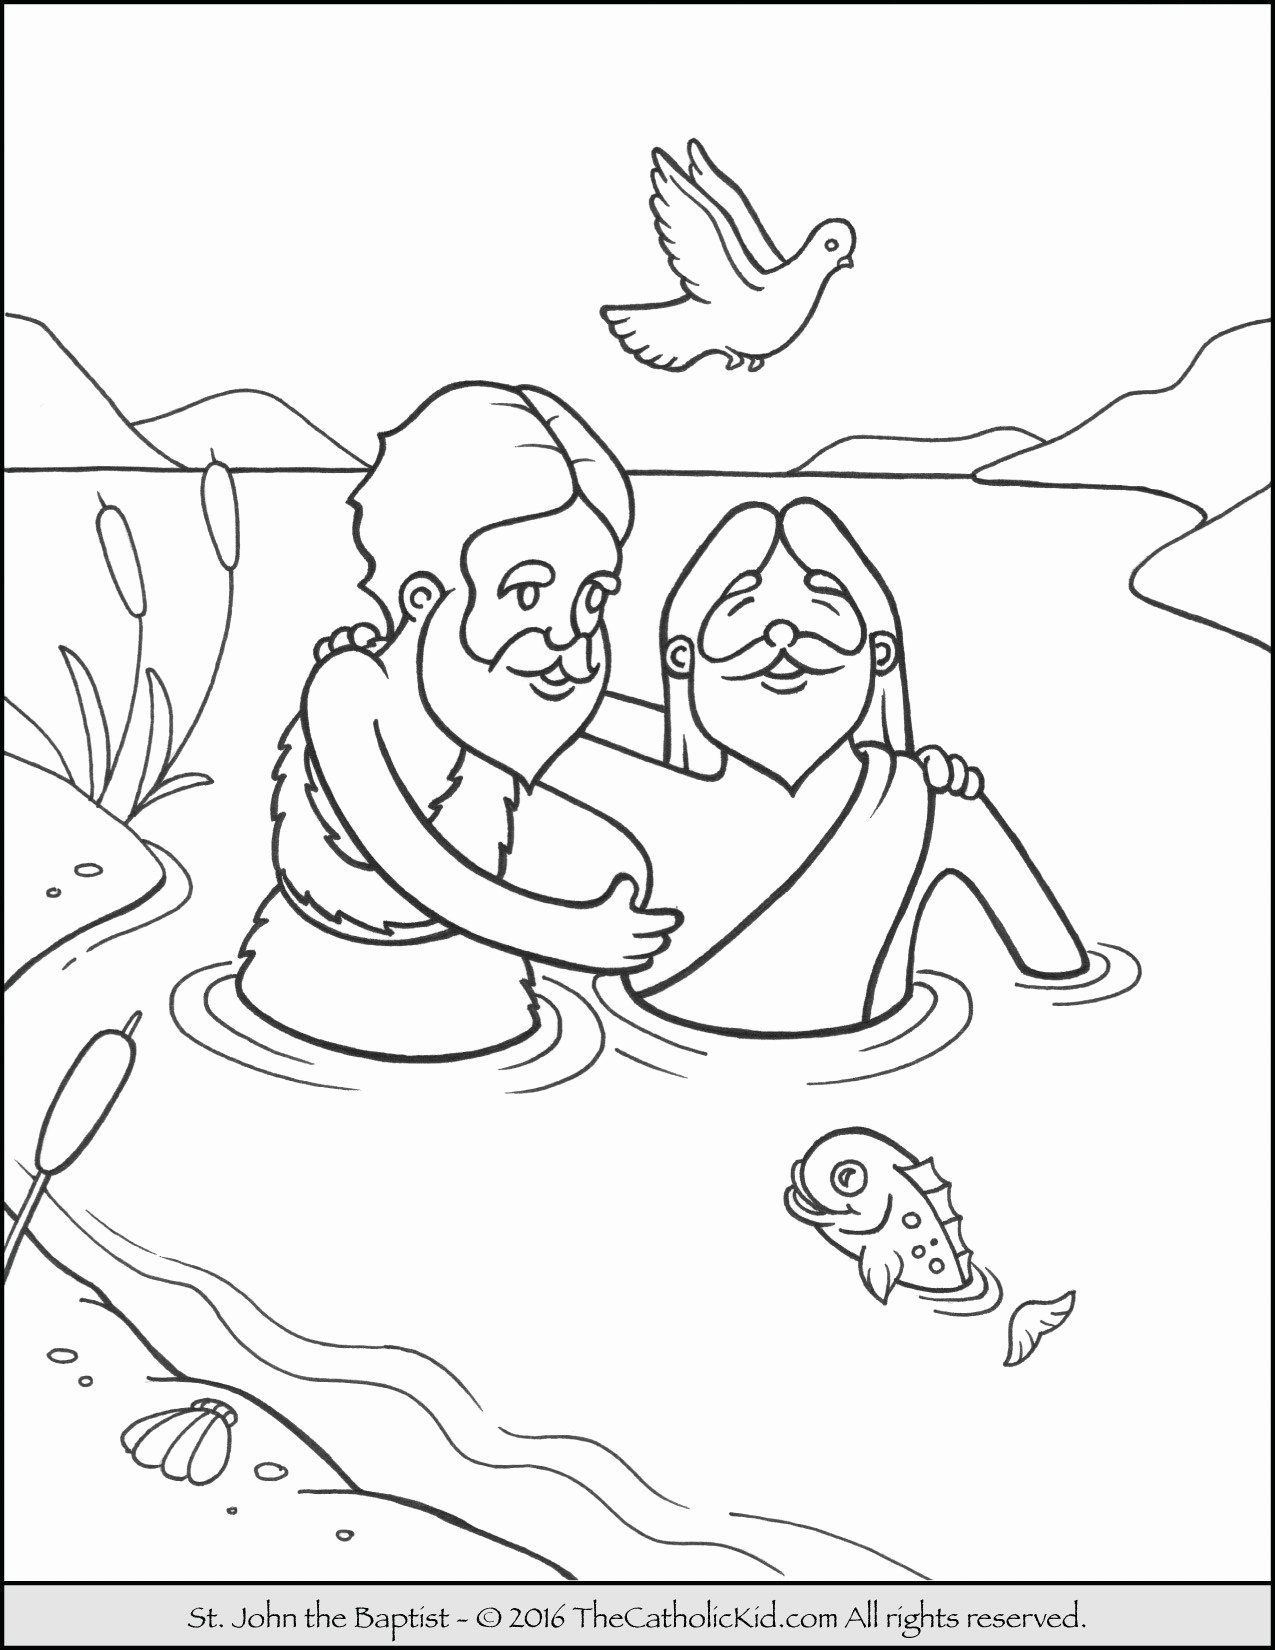 Baby Jesus Coloring Page Fresh Coloring Coloring Ideas Baby Jesus Sheet Disciples Pages In 2020 Jesus Coloring Pages Fairy Coloring Pages Bear Coloring Pages